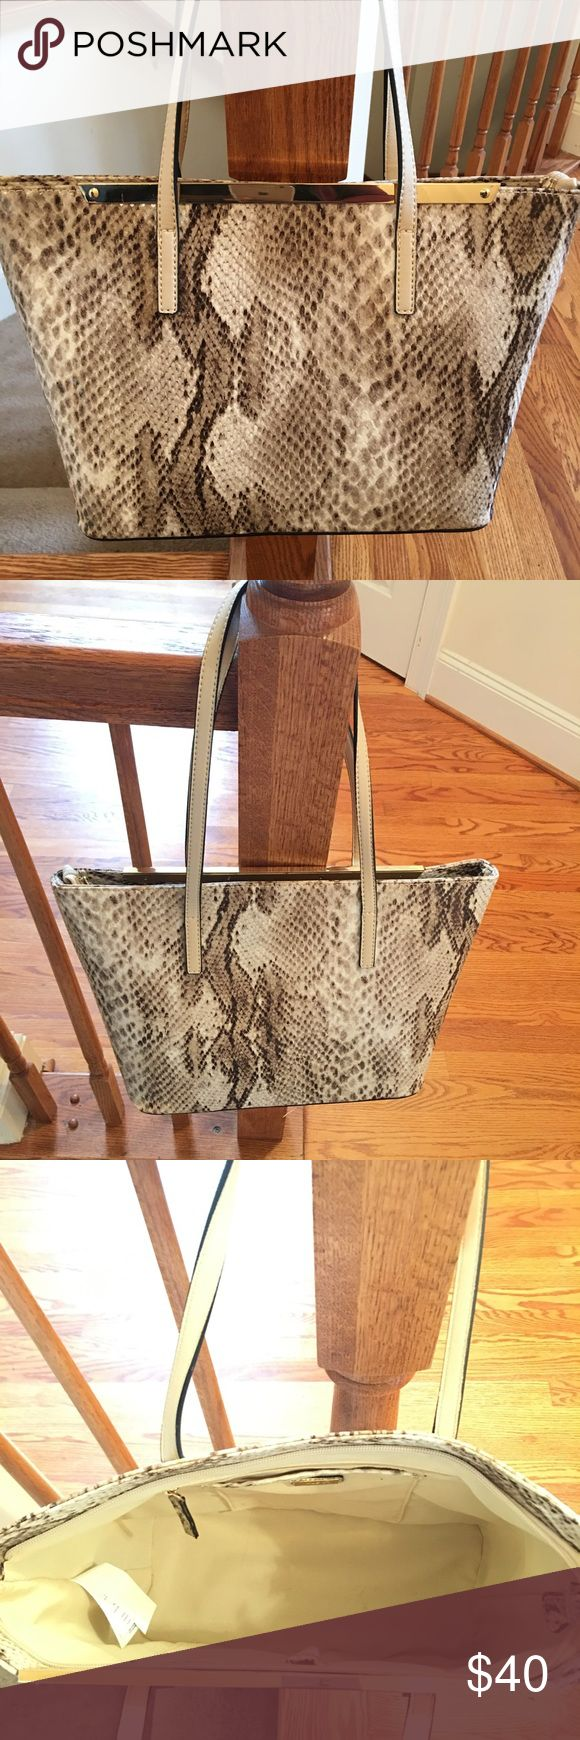 Aldo Handbag Barely used (about 3xs) Aldo snake skin purse. In good shape, brown and cream bag. Has a gold plate on front that adds great detail. Aldo Bags